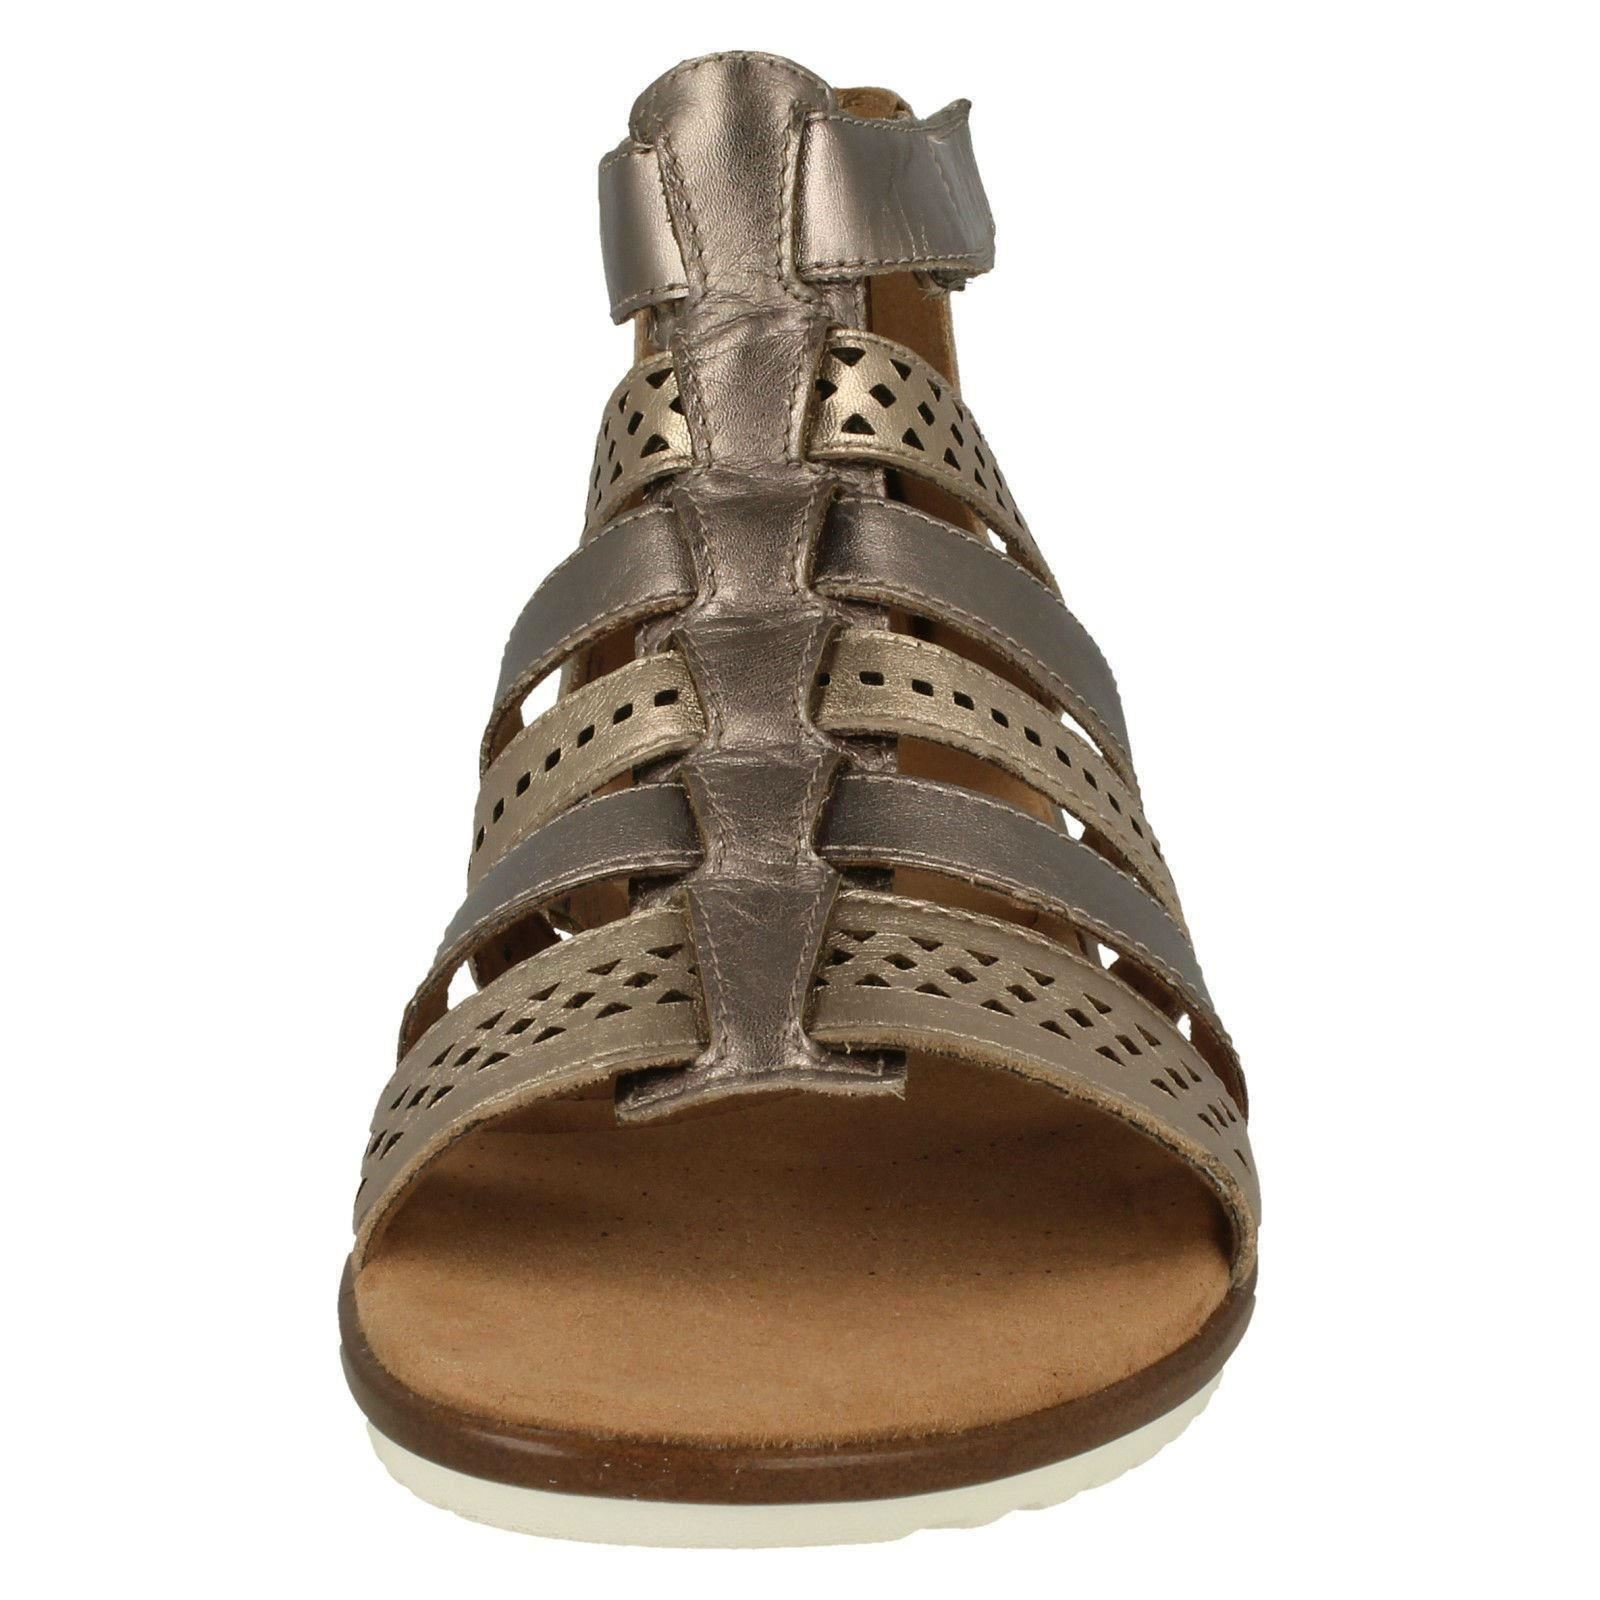 Leather Sandals Gladiator Metallic Lotus Ladies Kele Multi Clarks Bx1qWtwF